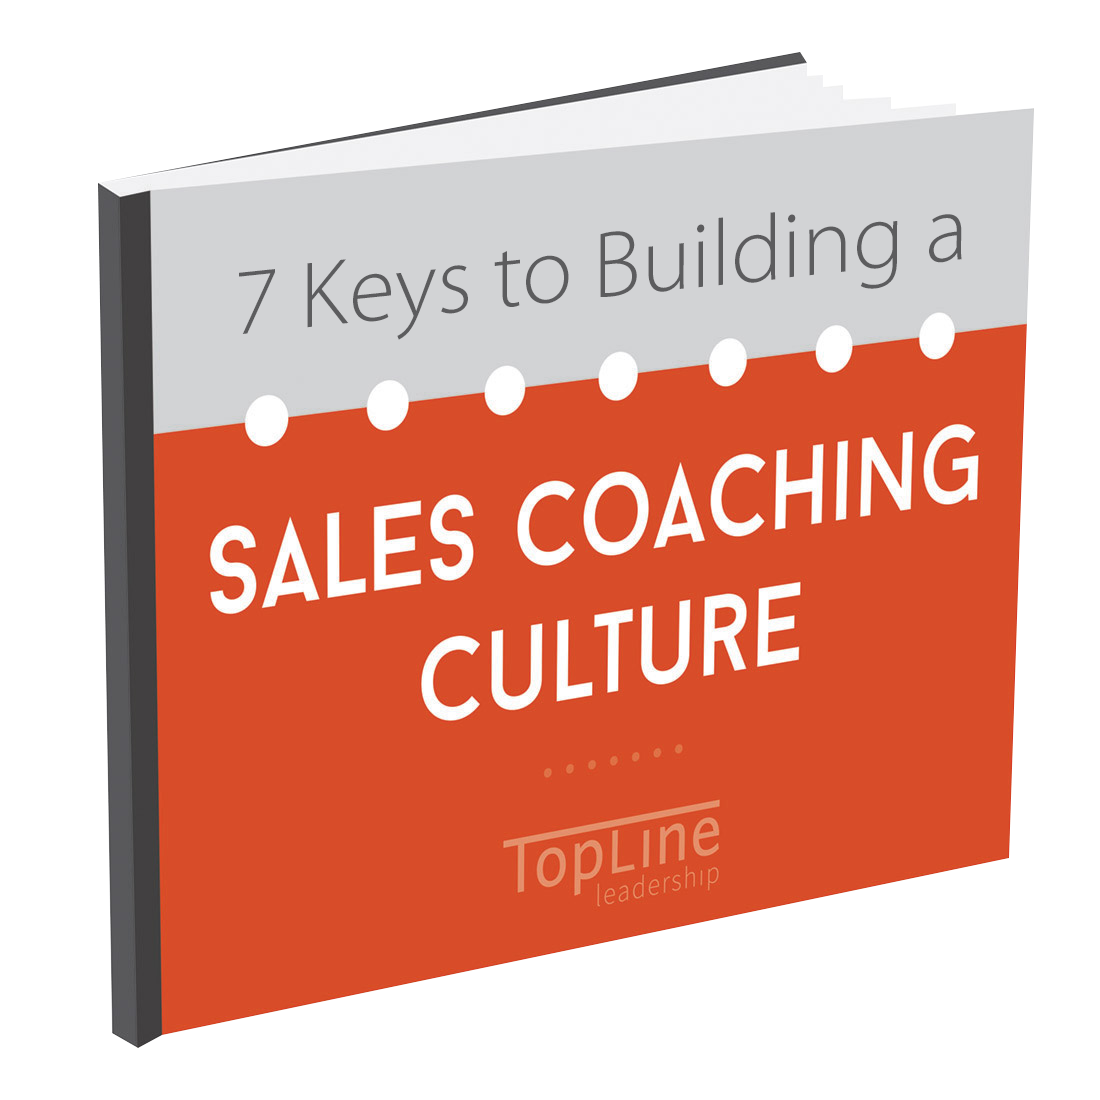 7 Keys to Building a Sales Coaching Culture